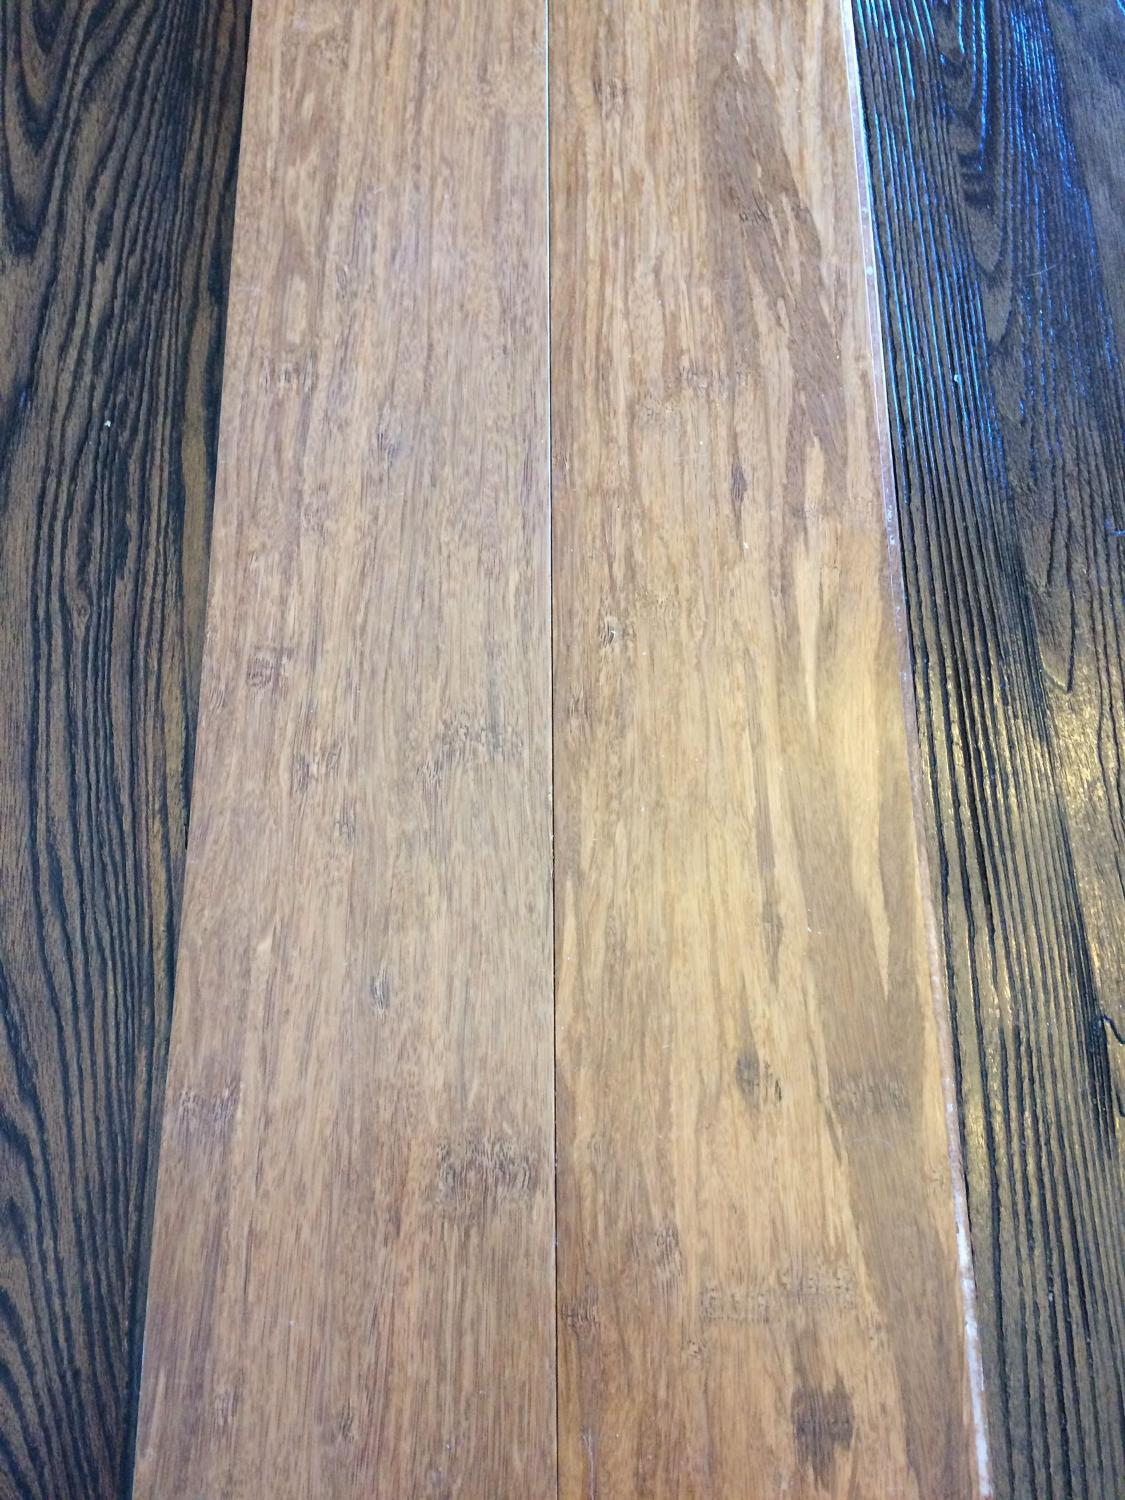 Best Flooring For Sale In Minot North Dakota For 2018